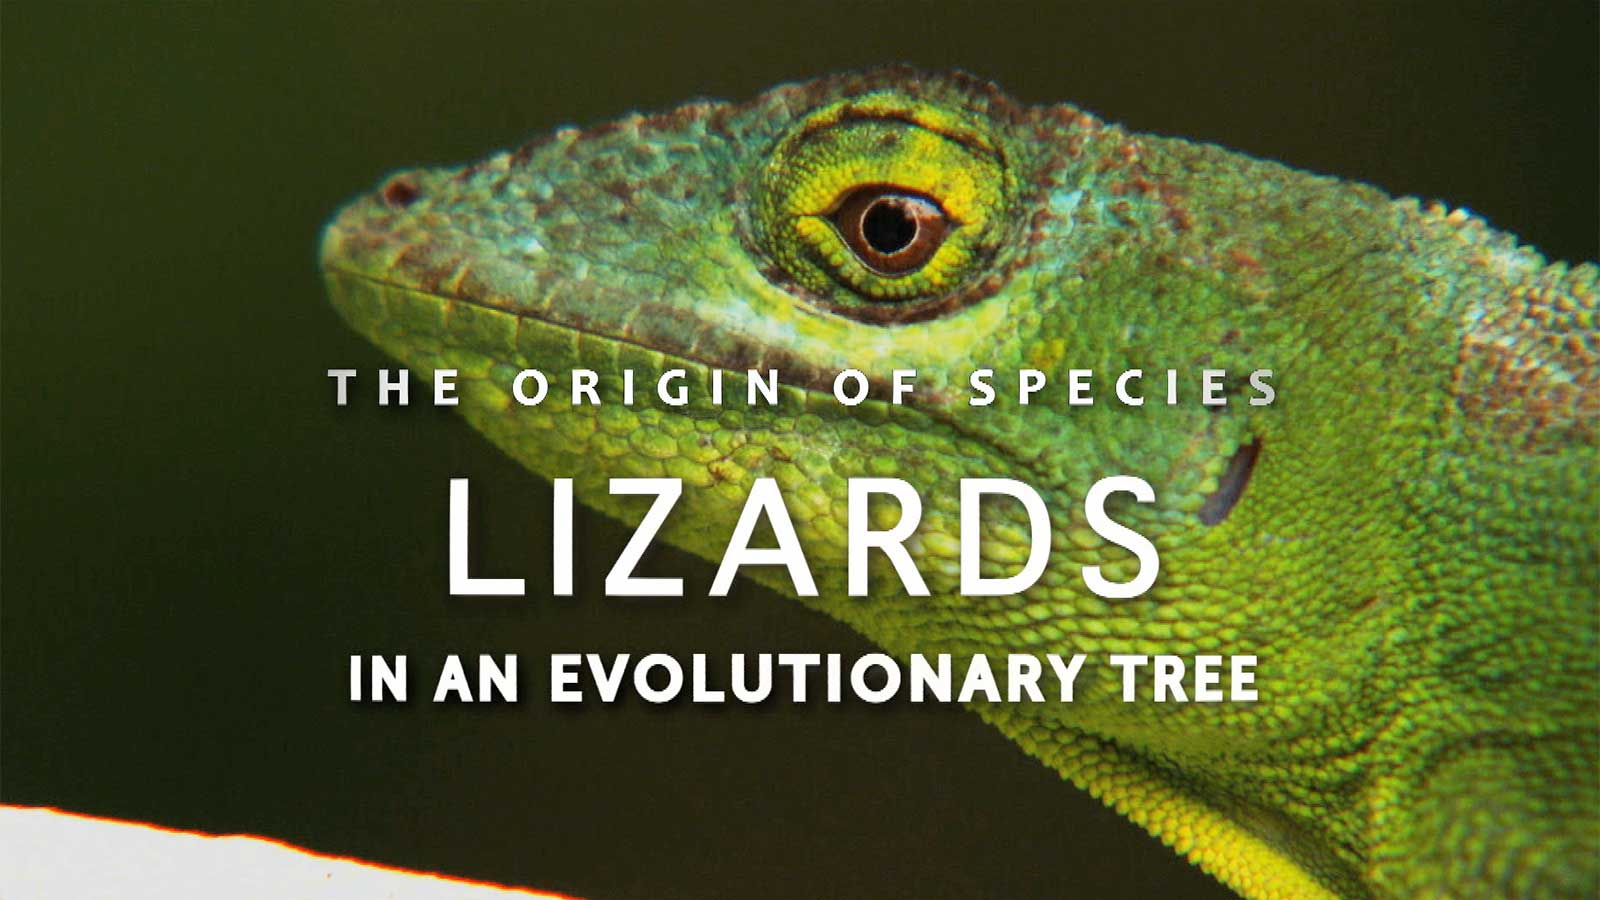 lizards title screen